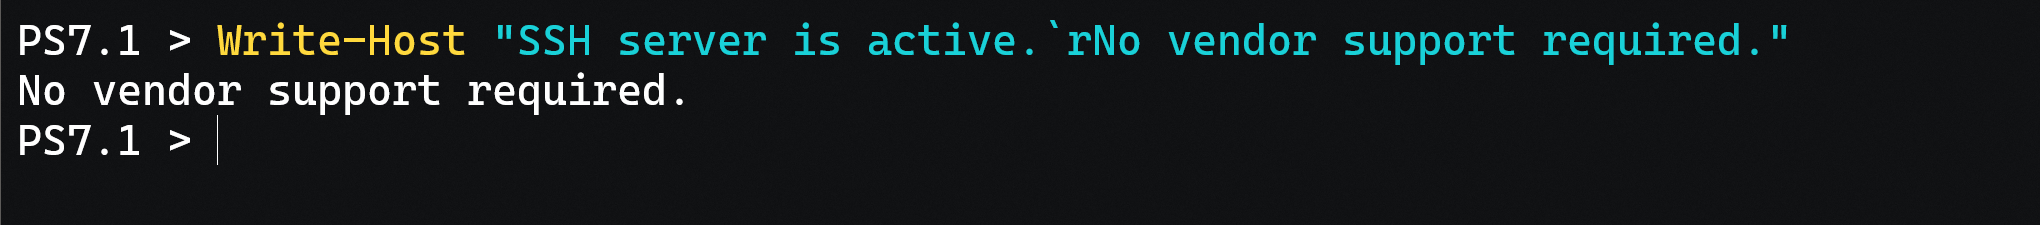 See how tricky `r can be? It makes part of the message disappear.